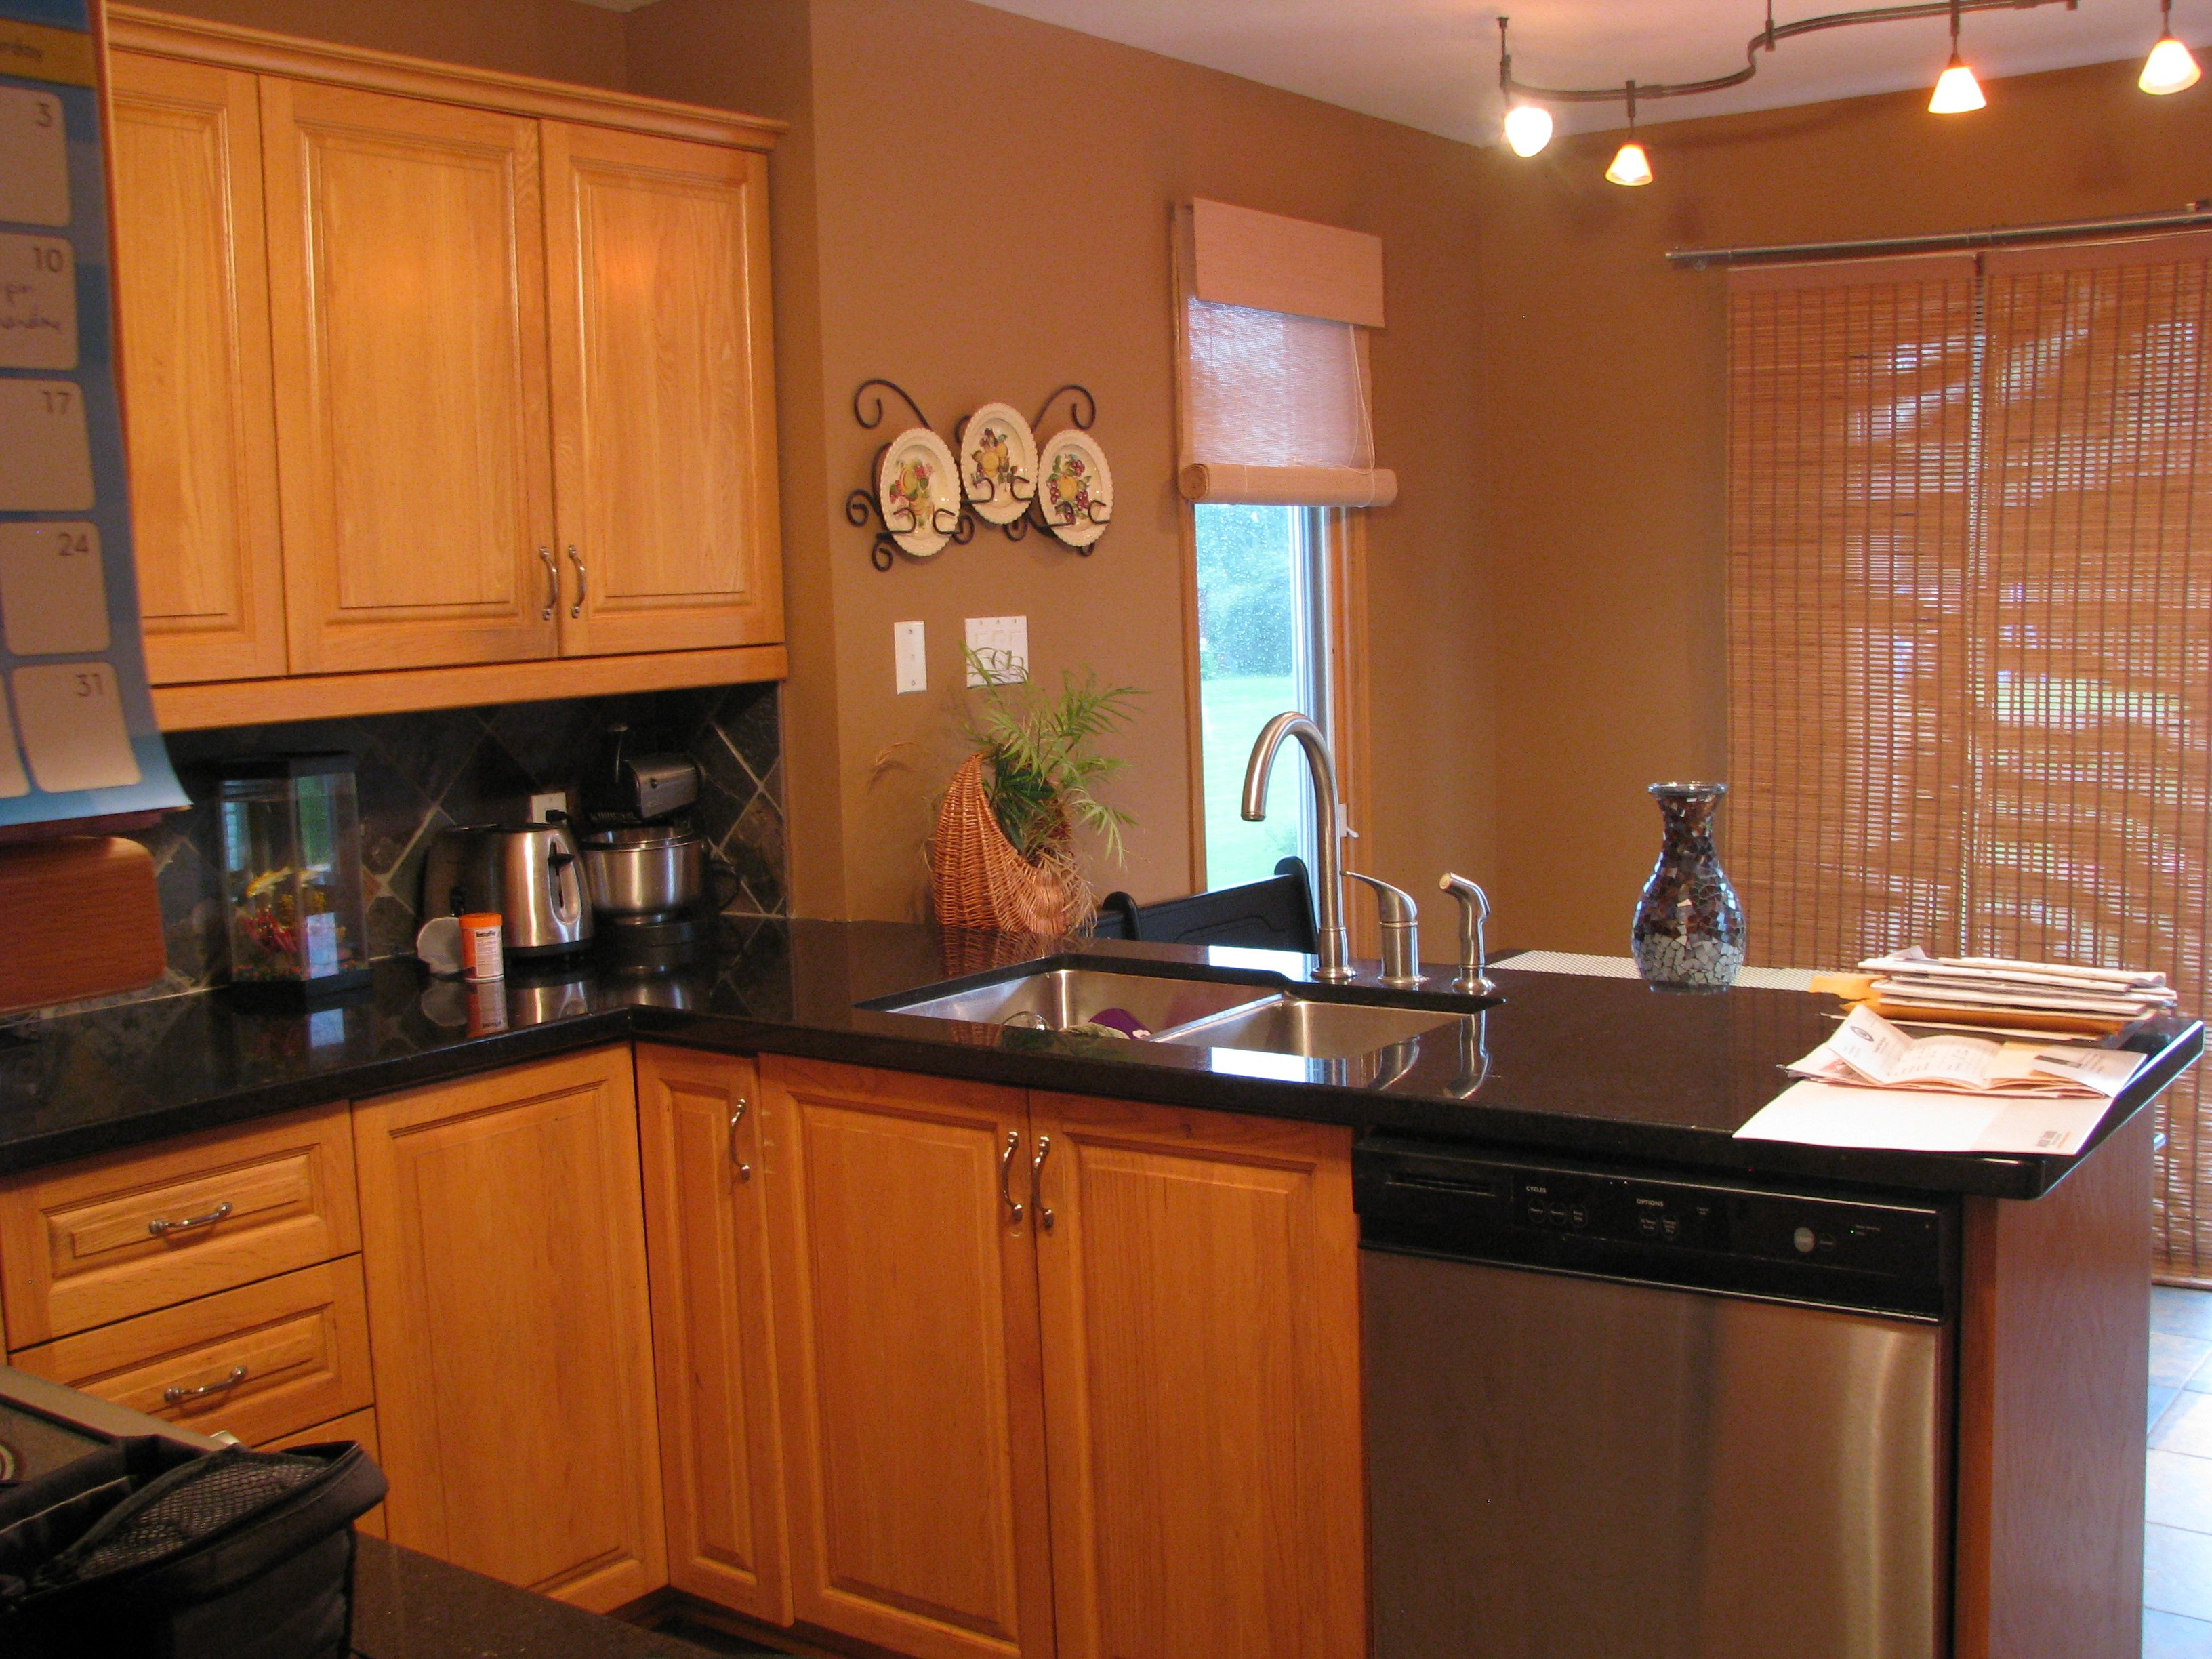 Medium image of outdated kitchen makeover